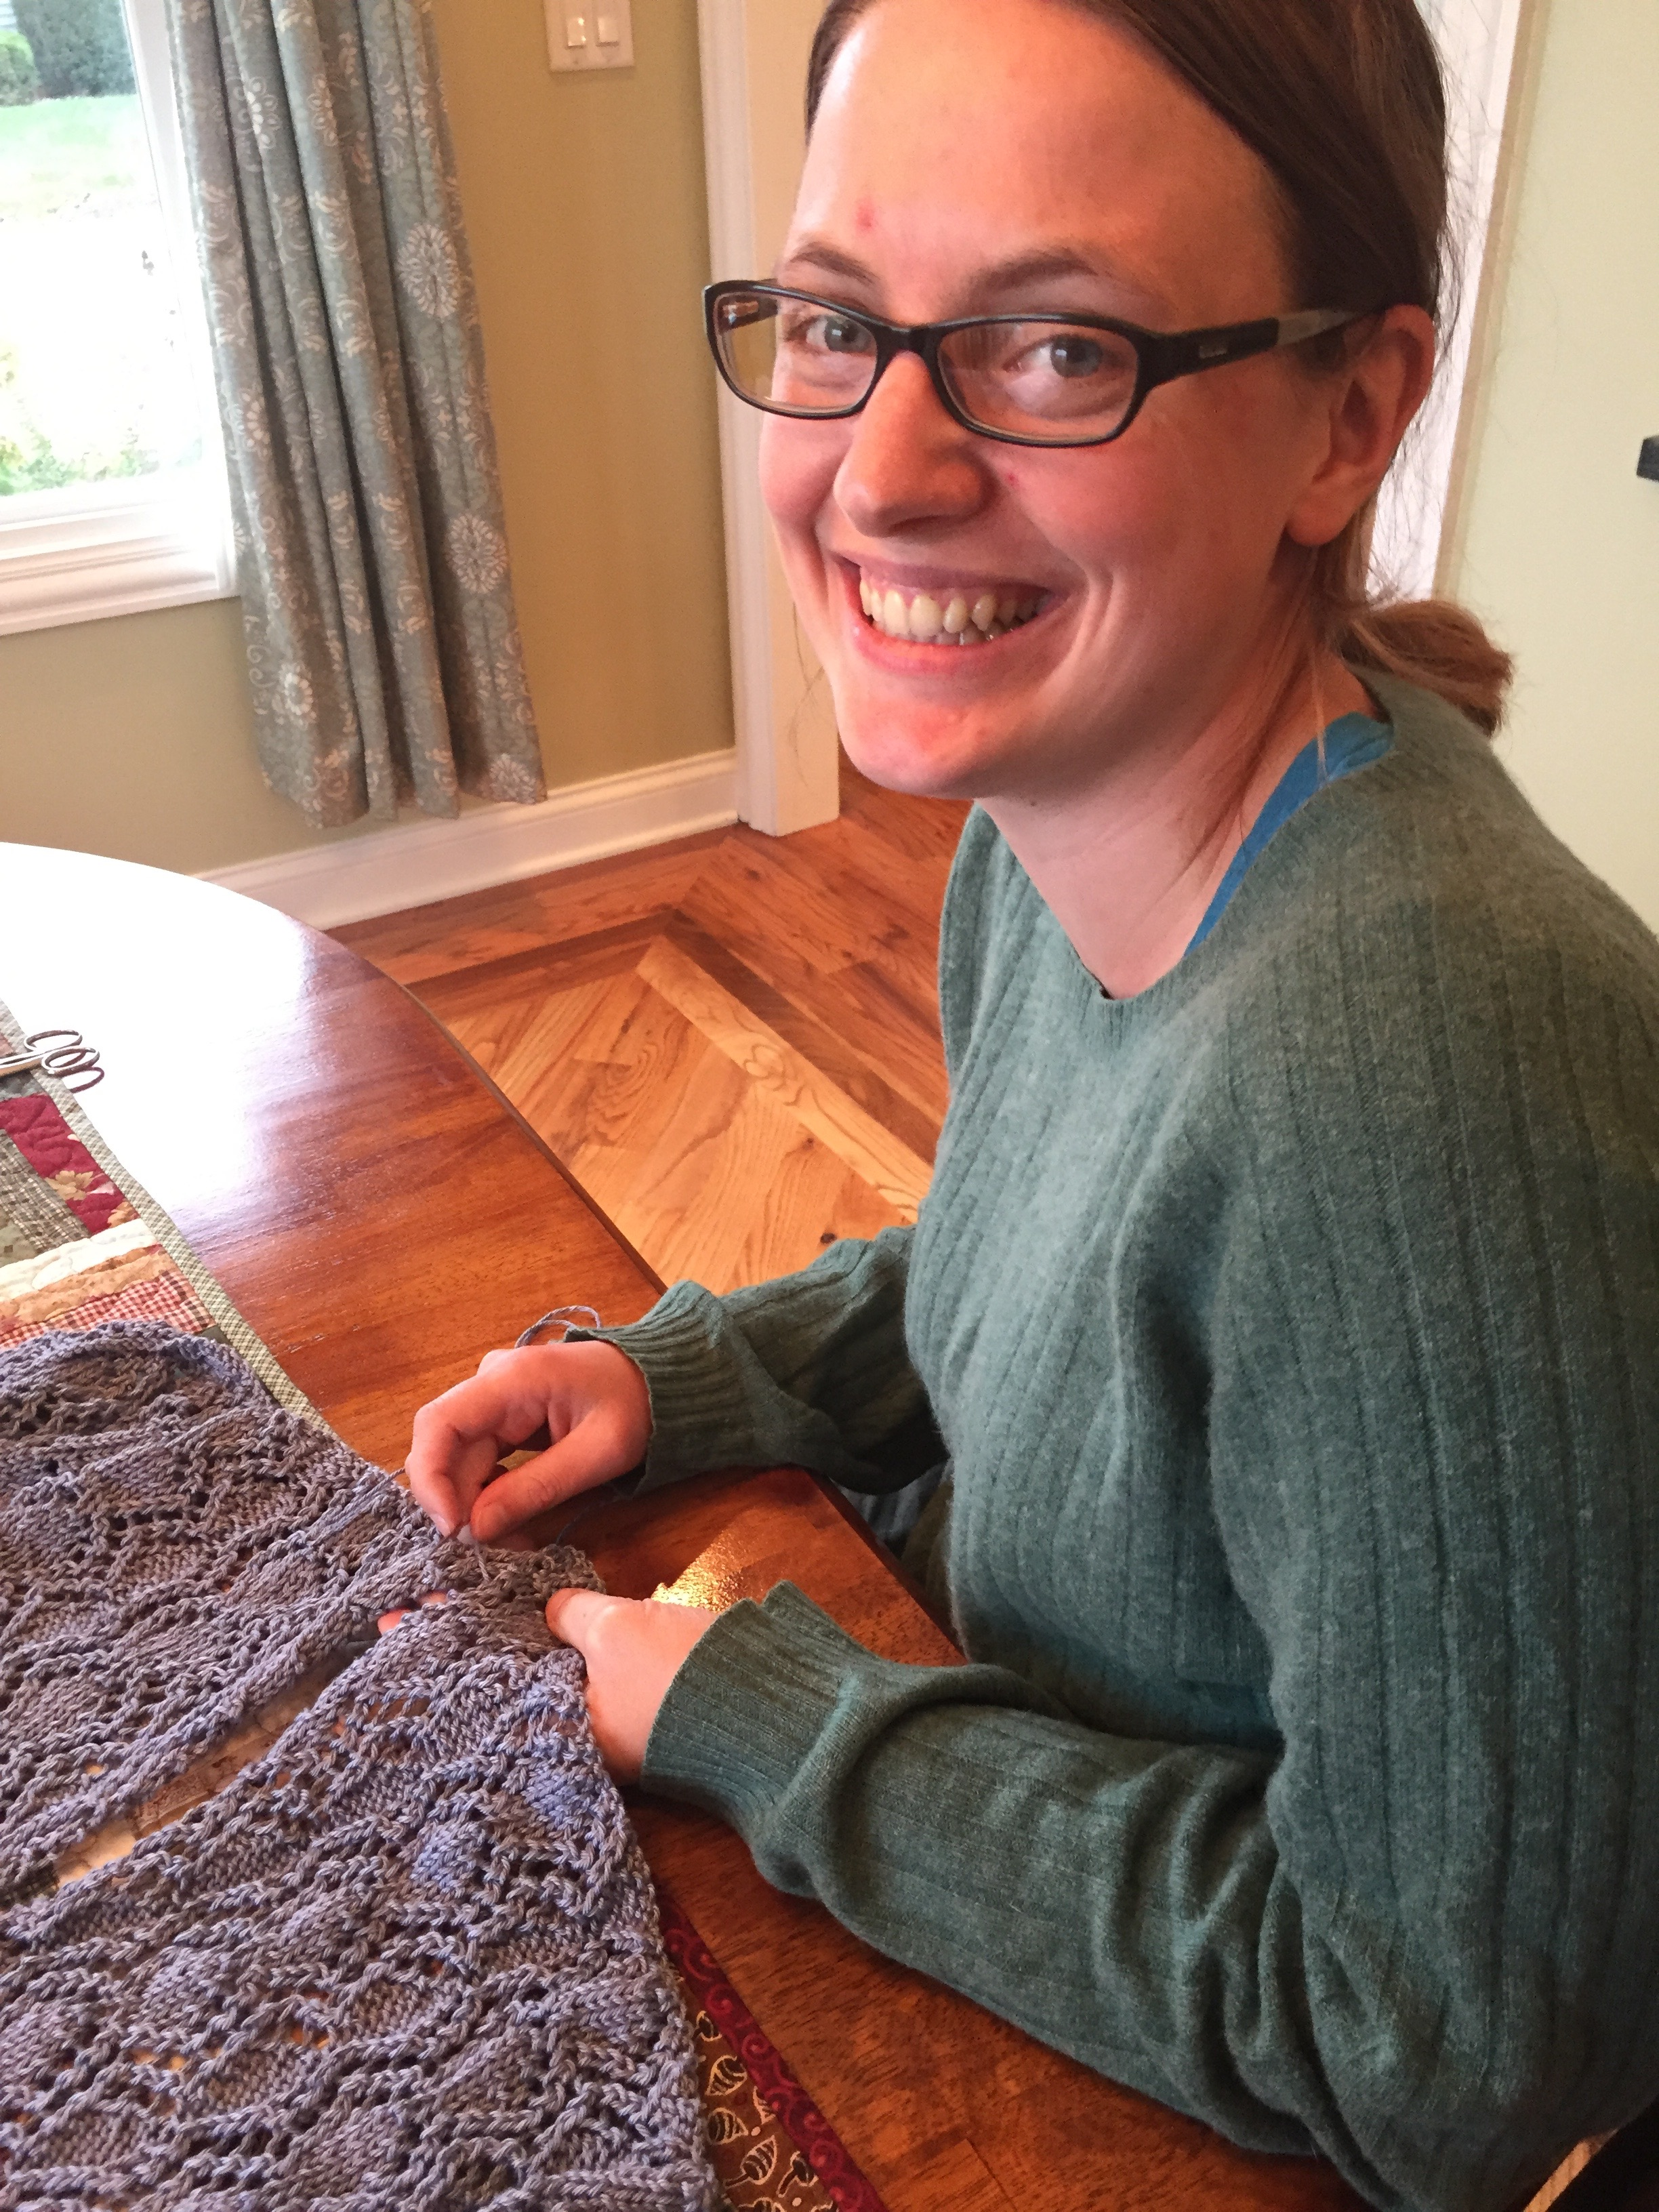 Audrey pieces together her FIRST KNITTING PROJECT. That's right: a lace, long-sleeved tunic!